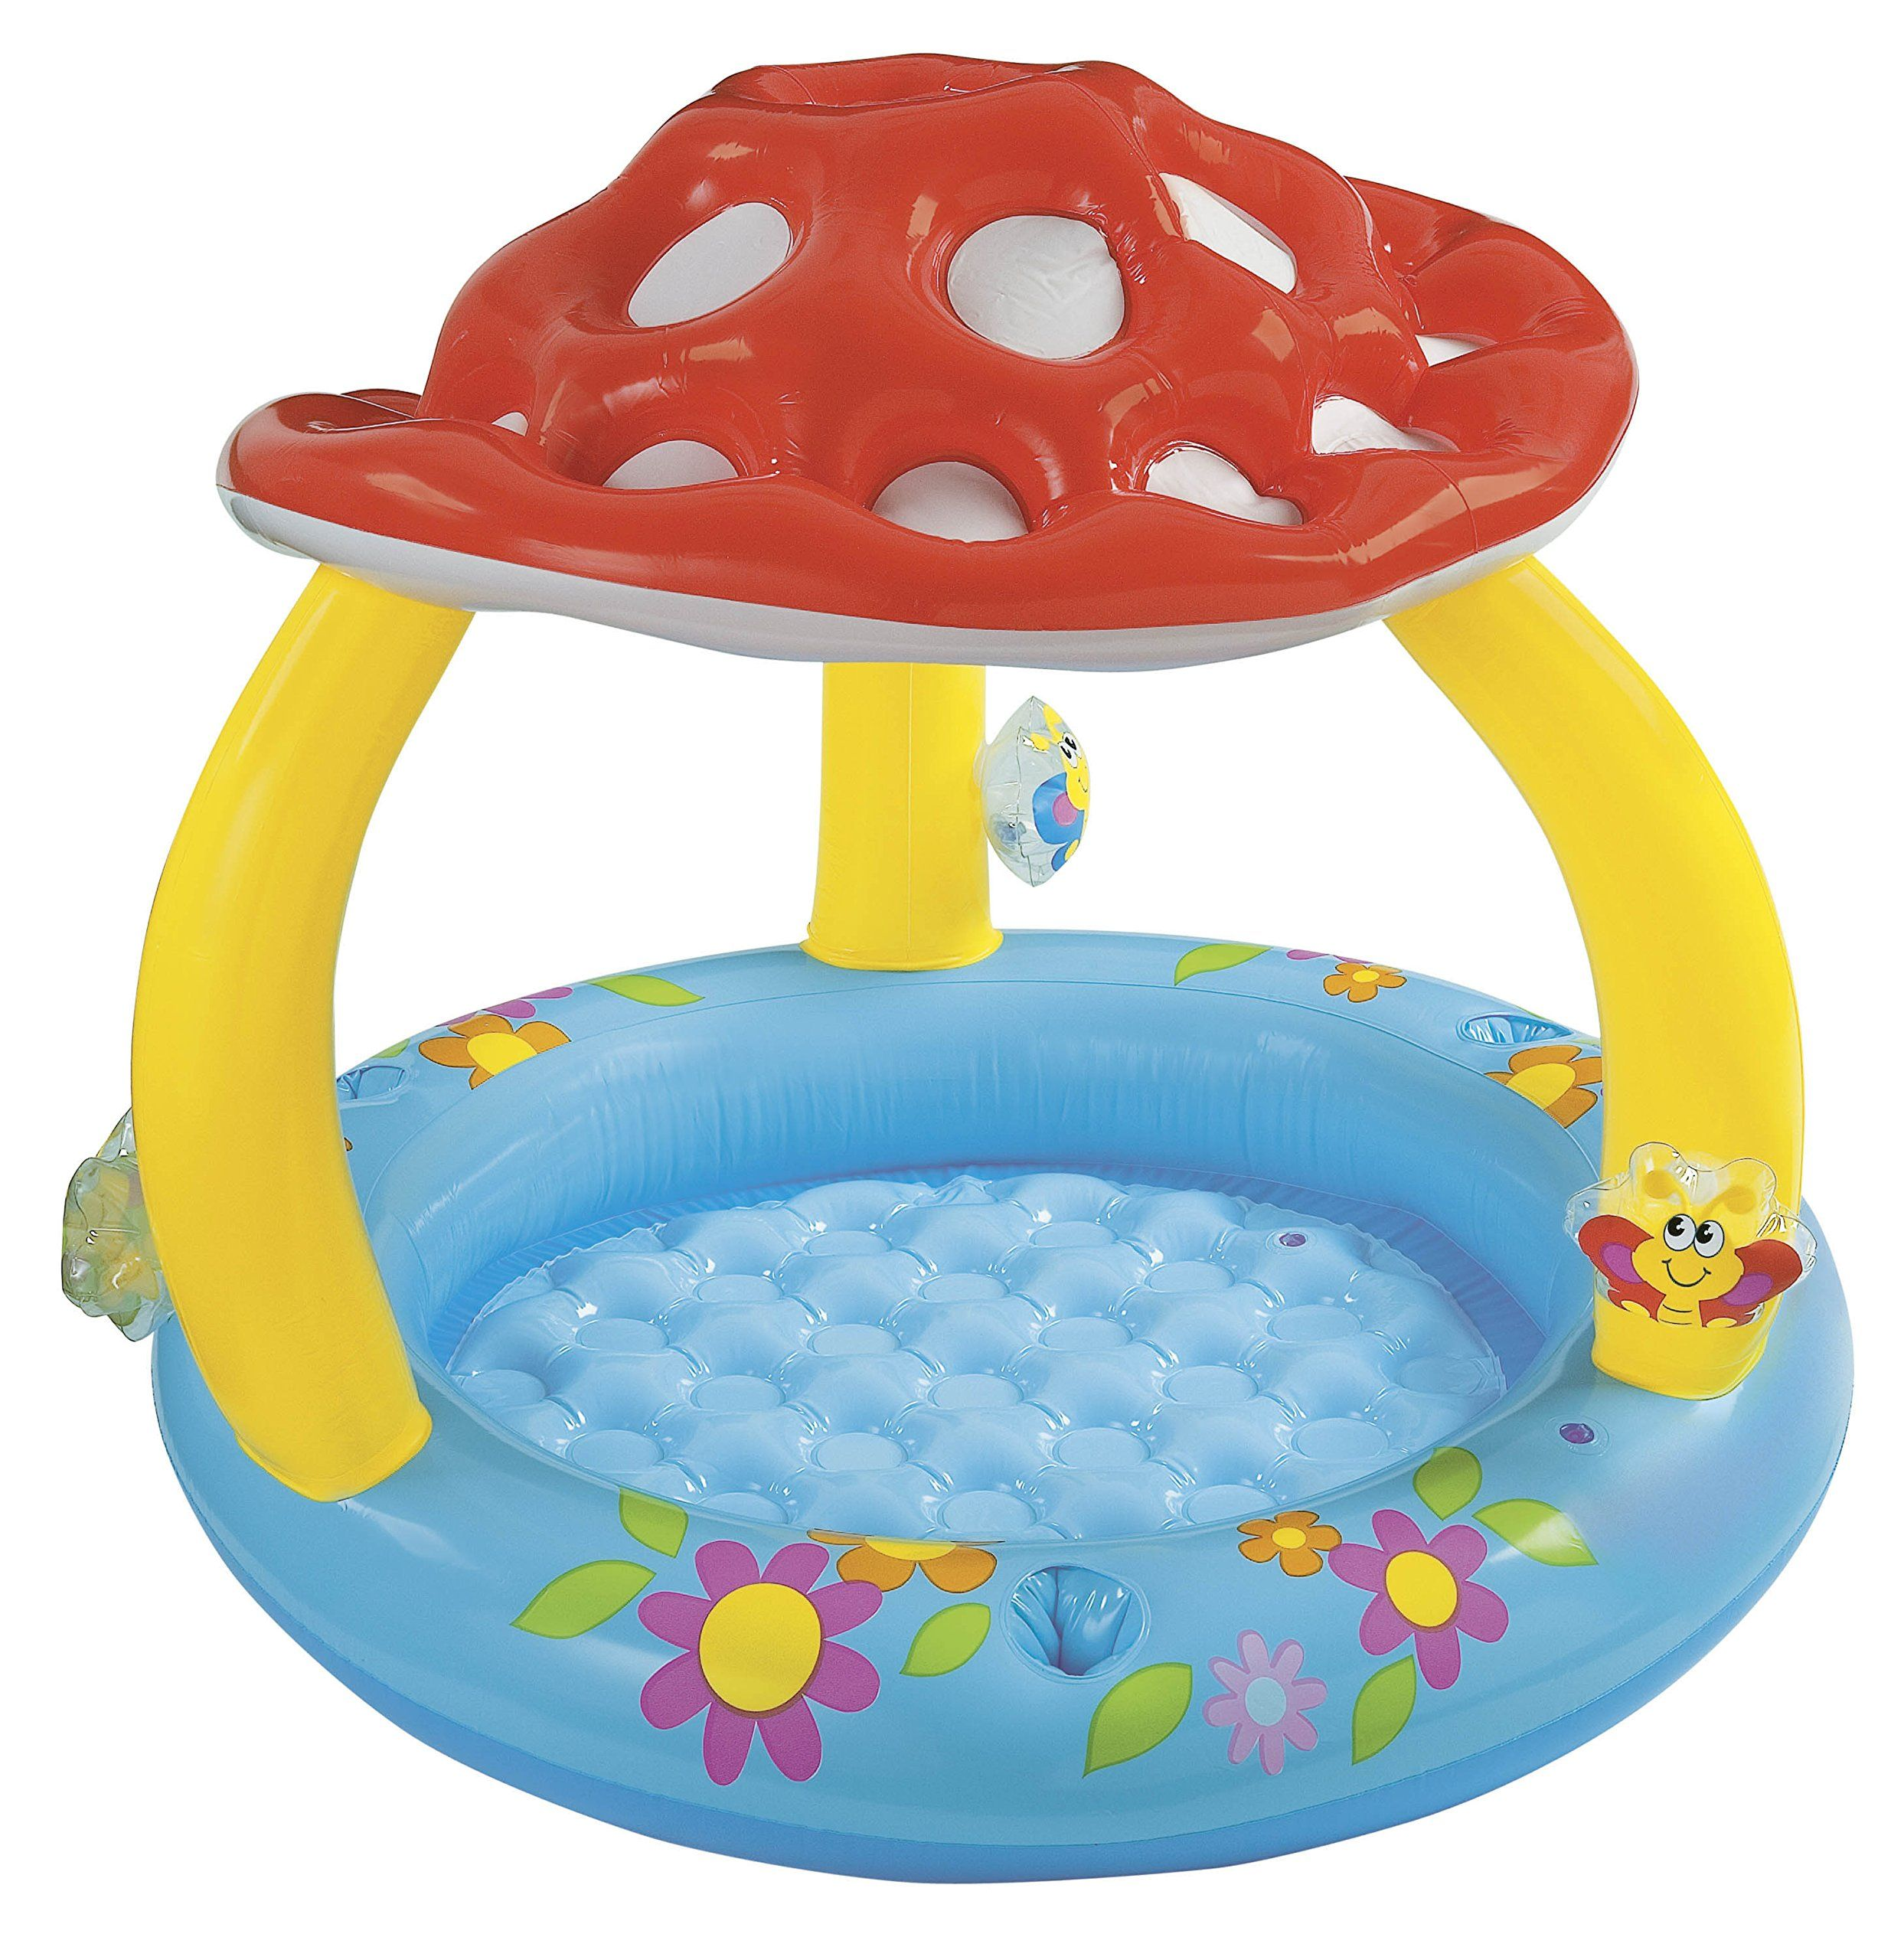 Intex Mushroom Inflatable Baby Pool 40 X 35 For Ages 1 3 A Soft Floor Allows For Gentle Play Baby S Own Pool